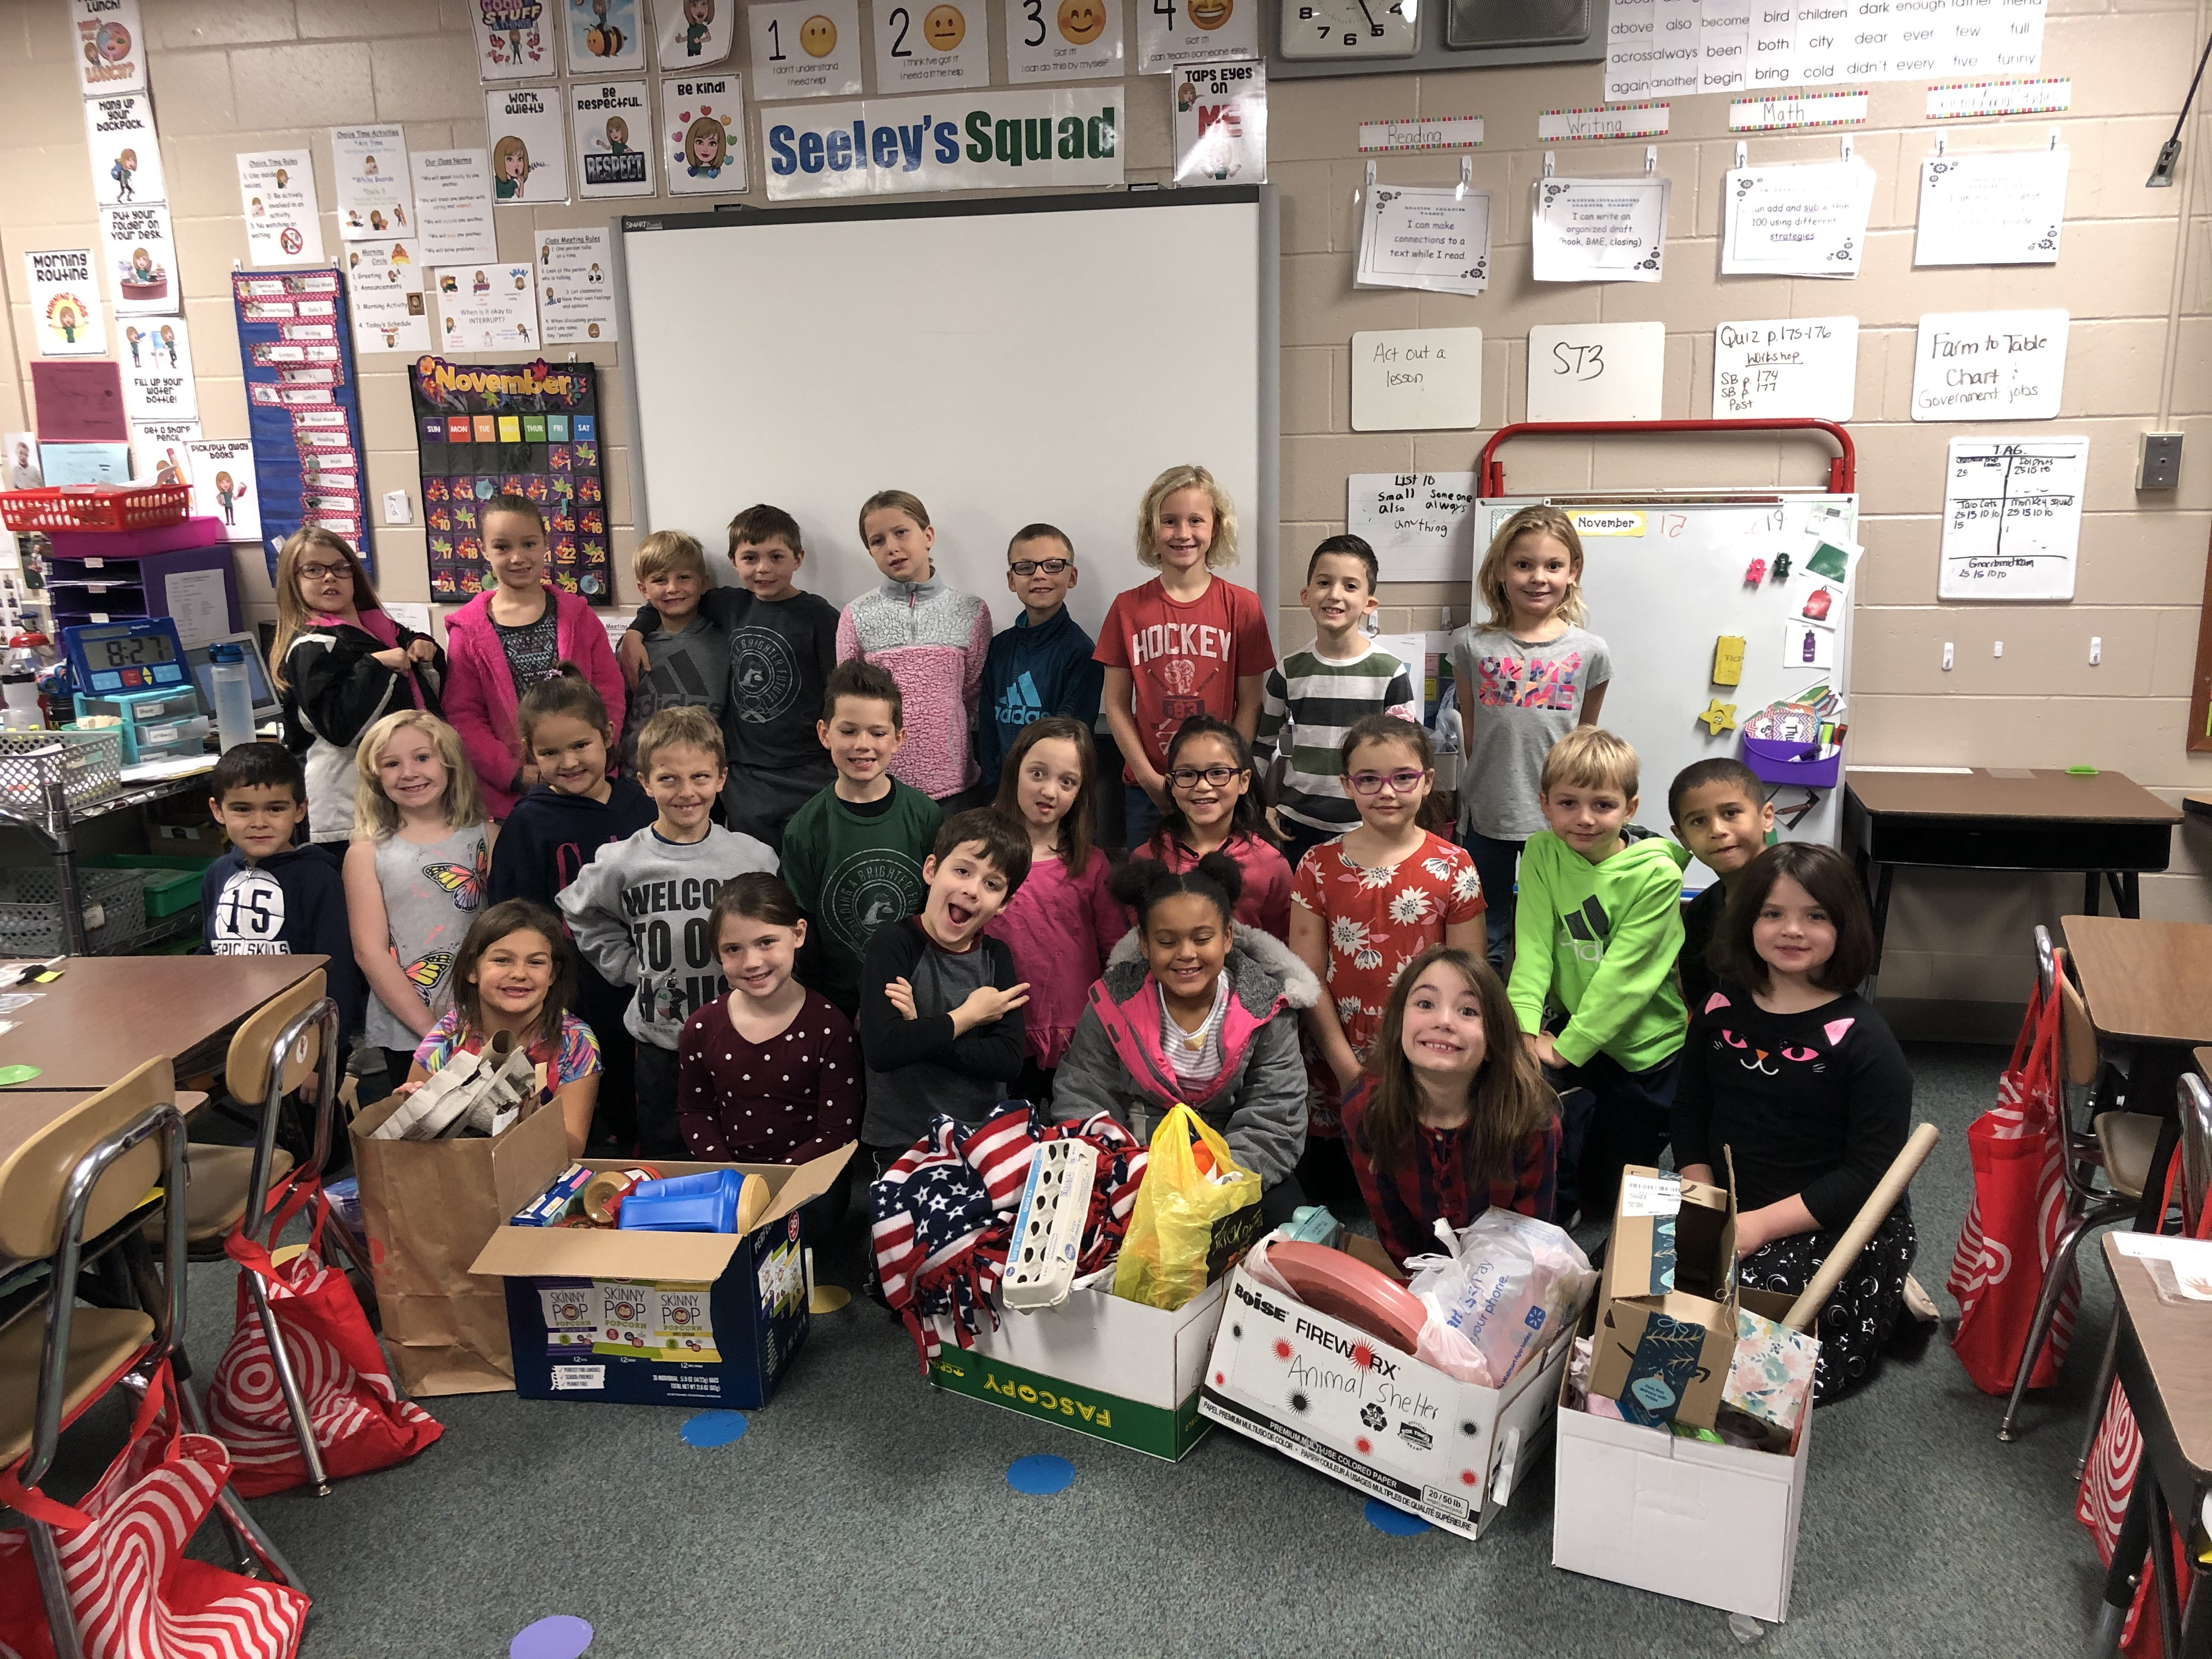 Students pose with donations for humane society